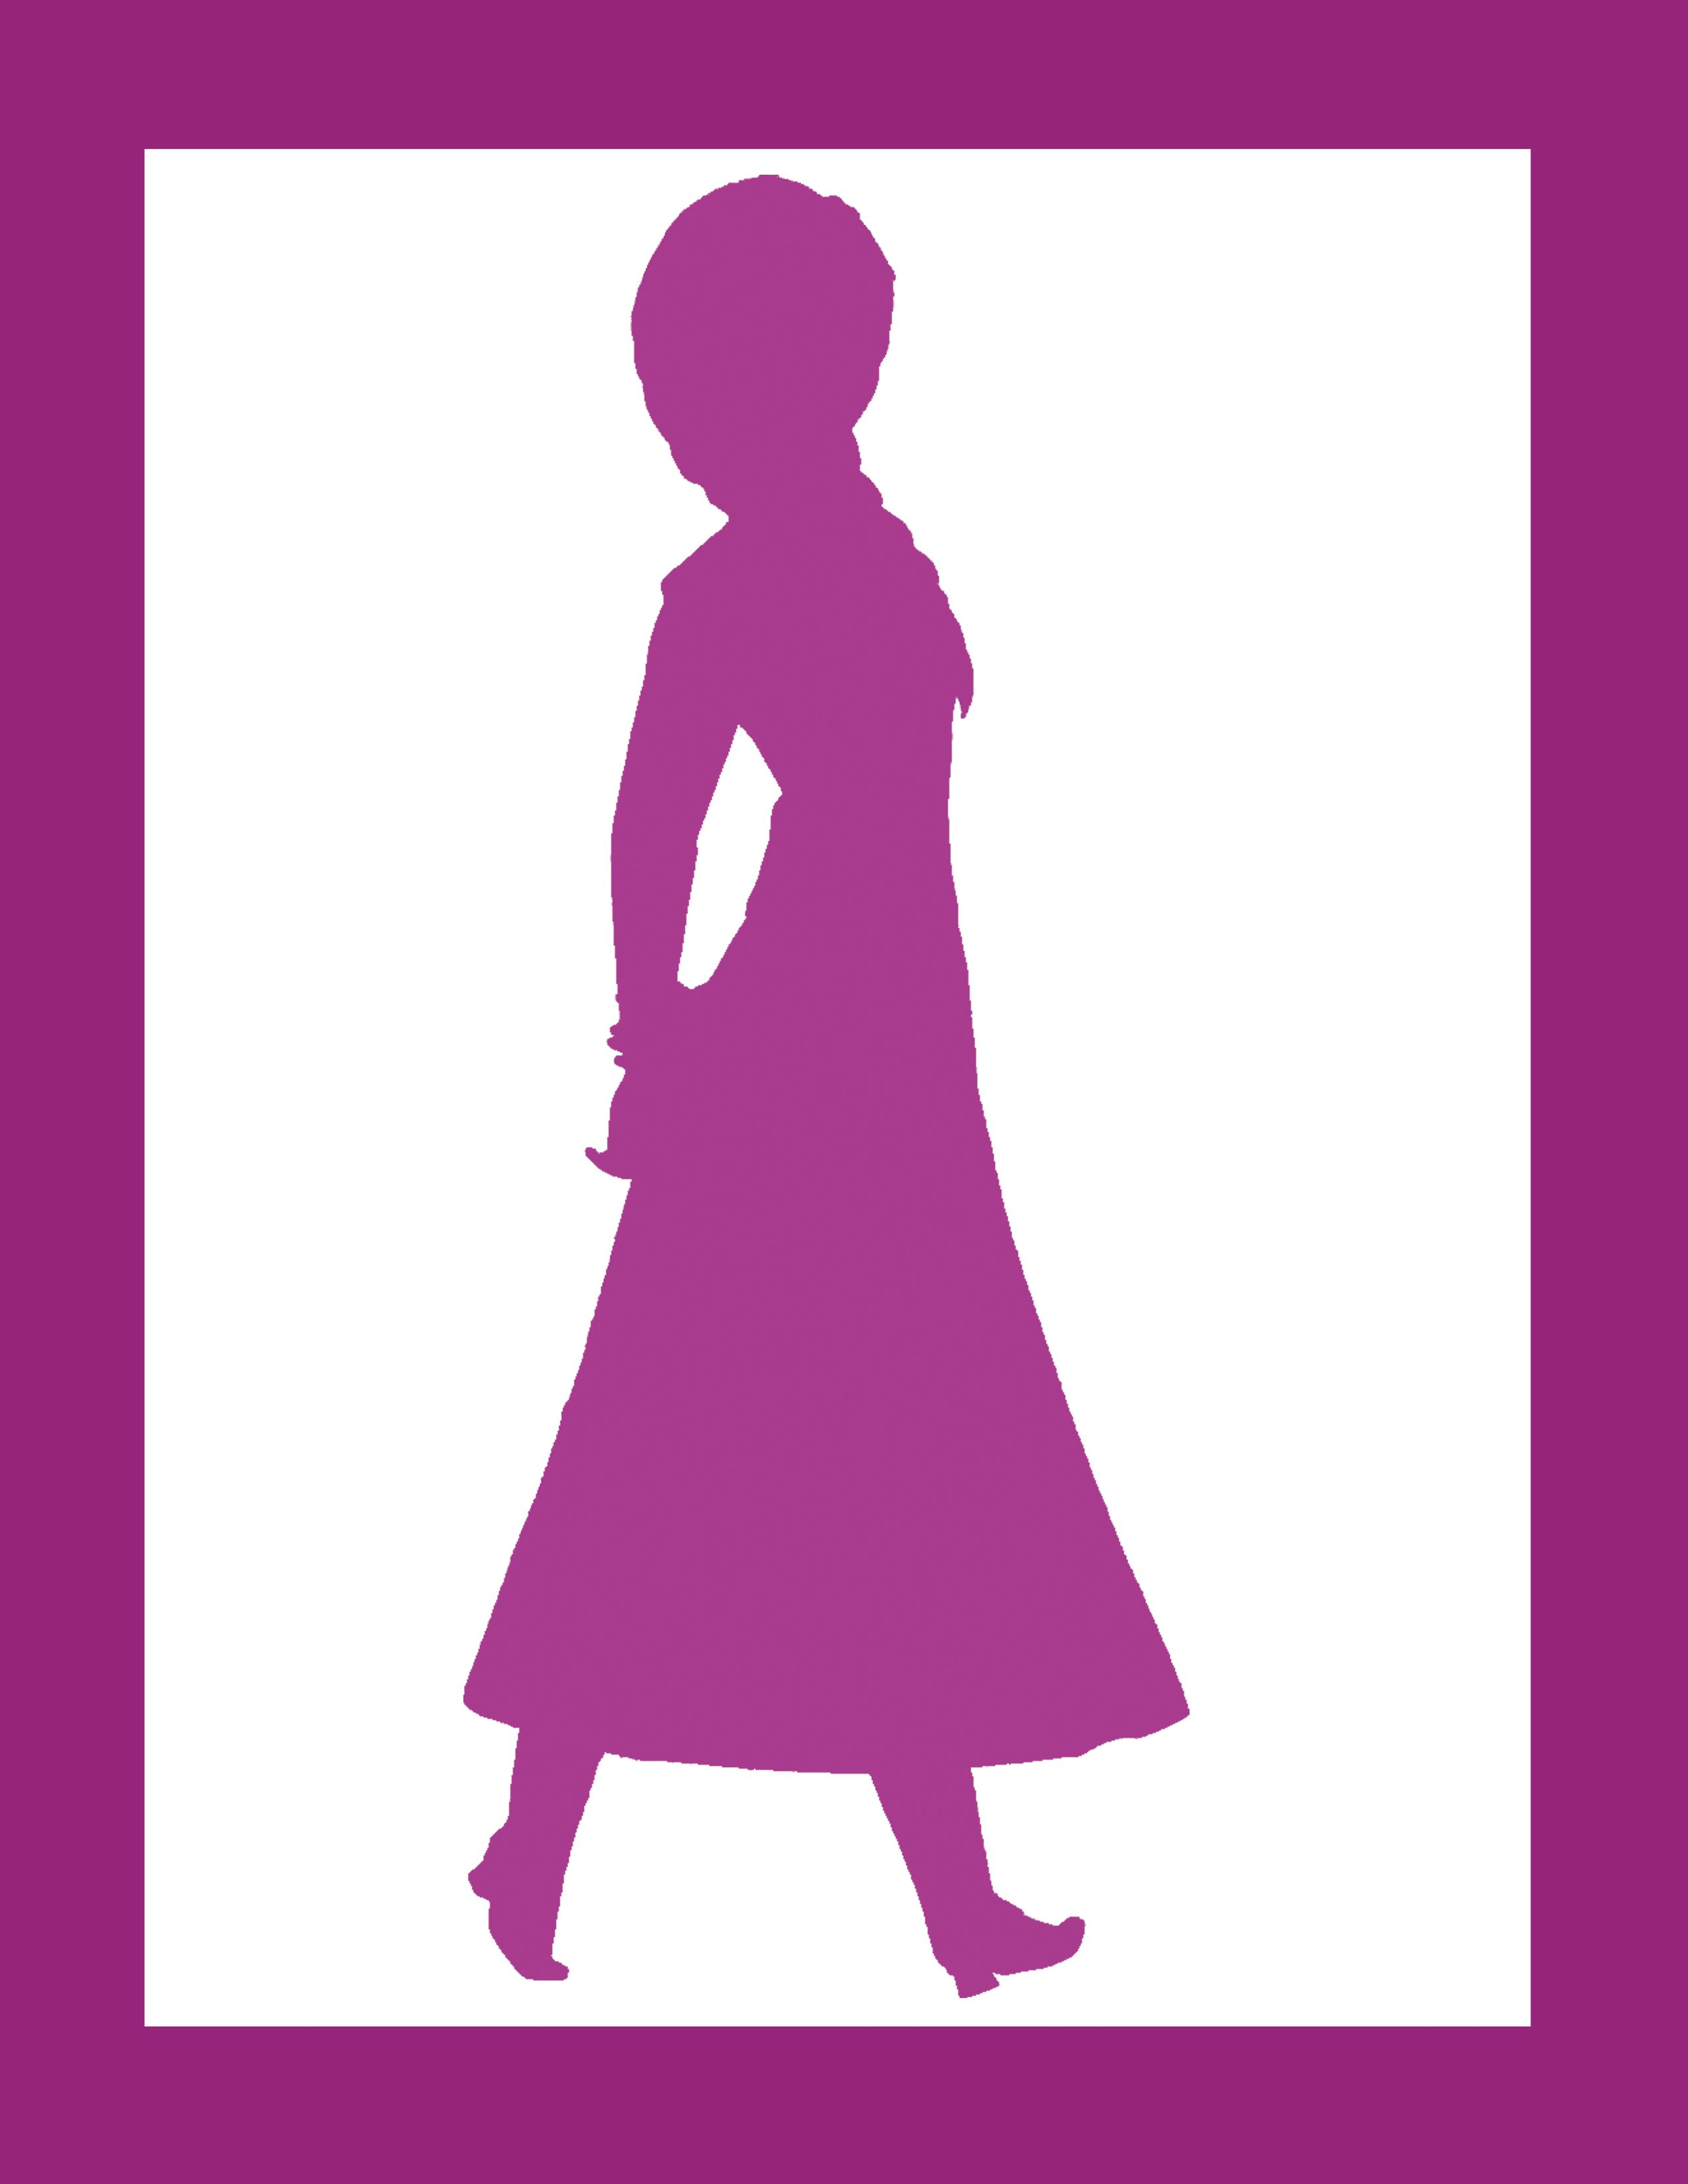 Frozen Silhouette Images Anna Frozen Silhouette